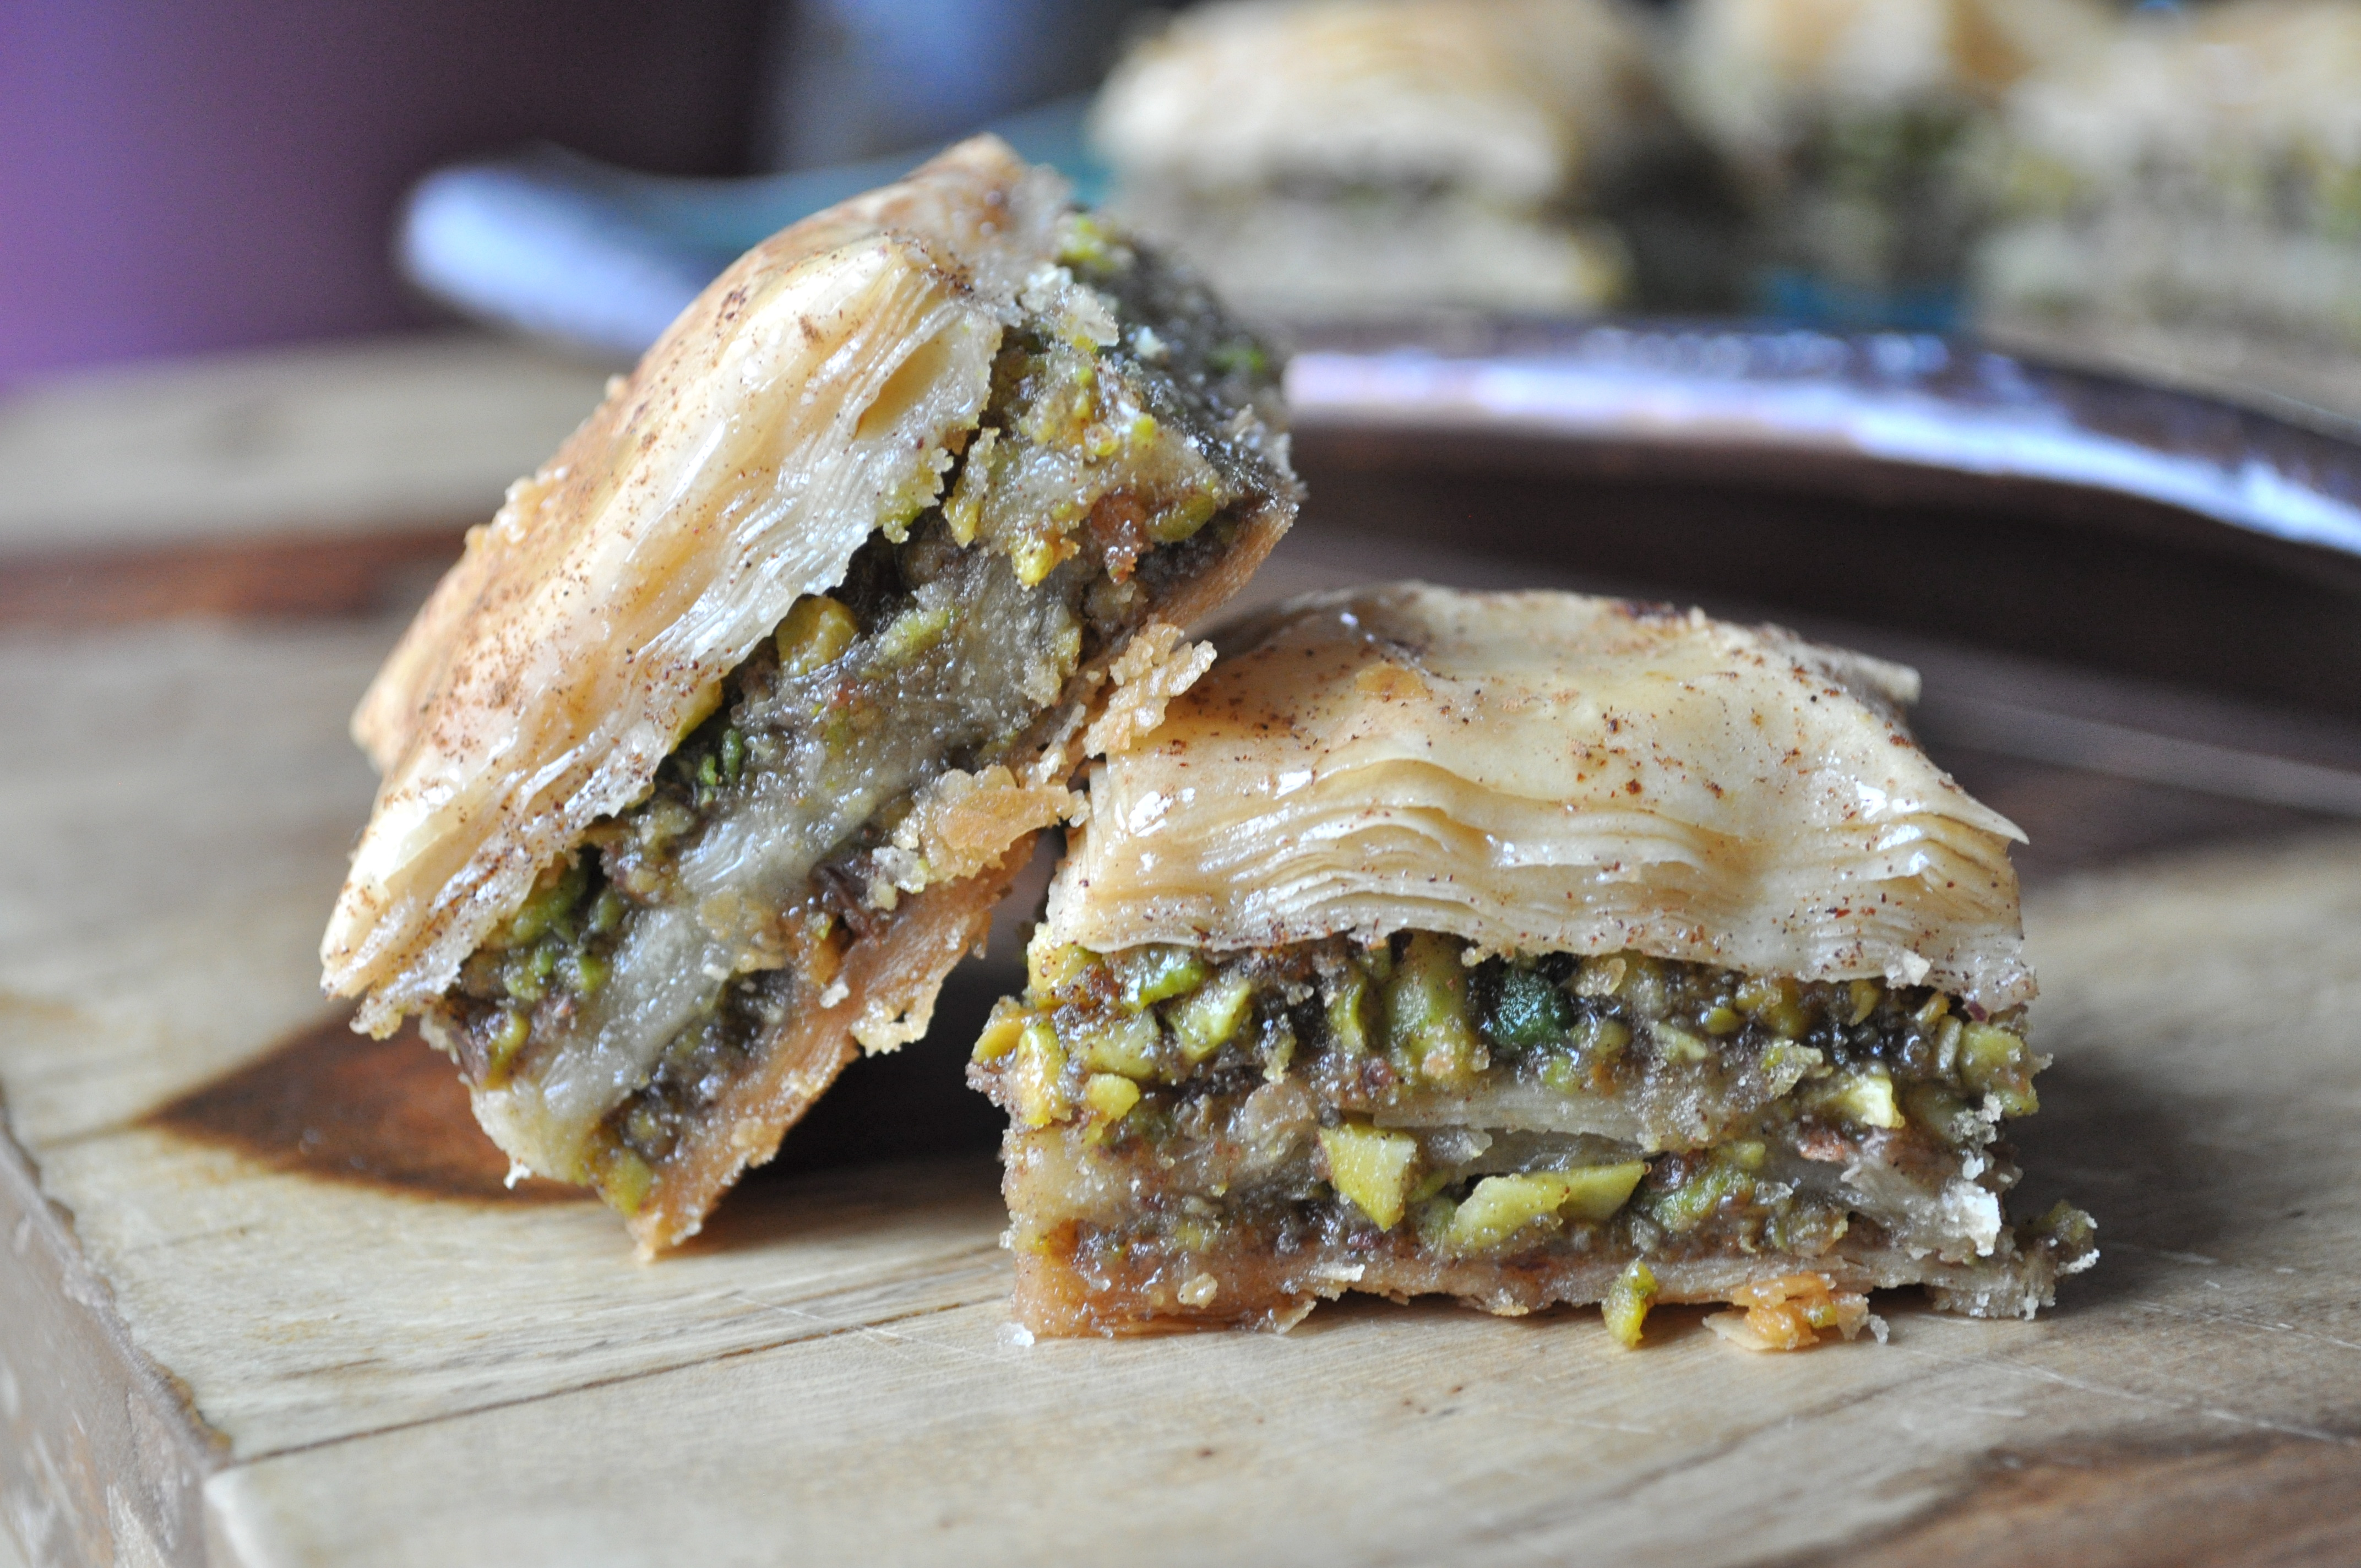 Celebrating Mom | Pistachio Baklava with Cinnamon Honey Syrup